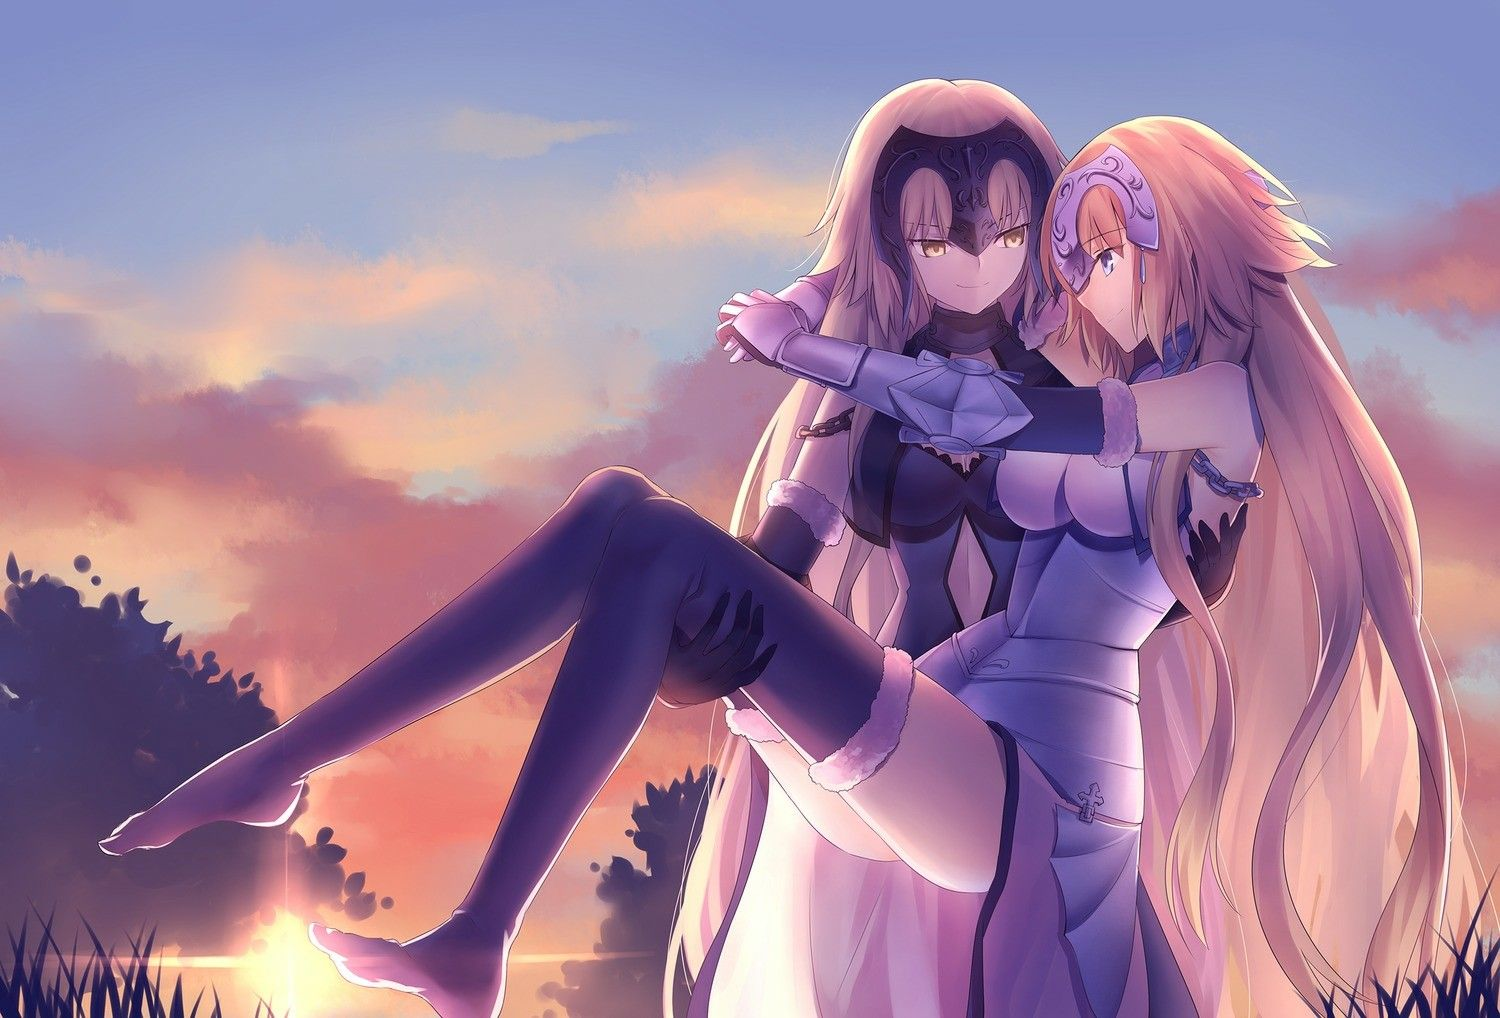 Pin by Shawna Zeigler on Jeanne D' Arc Fate stay night anime